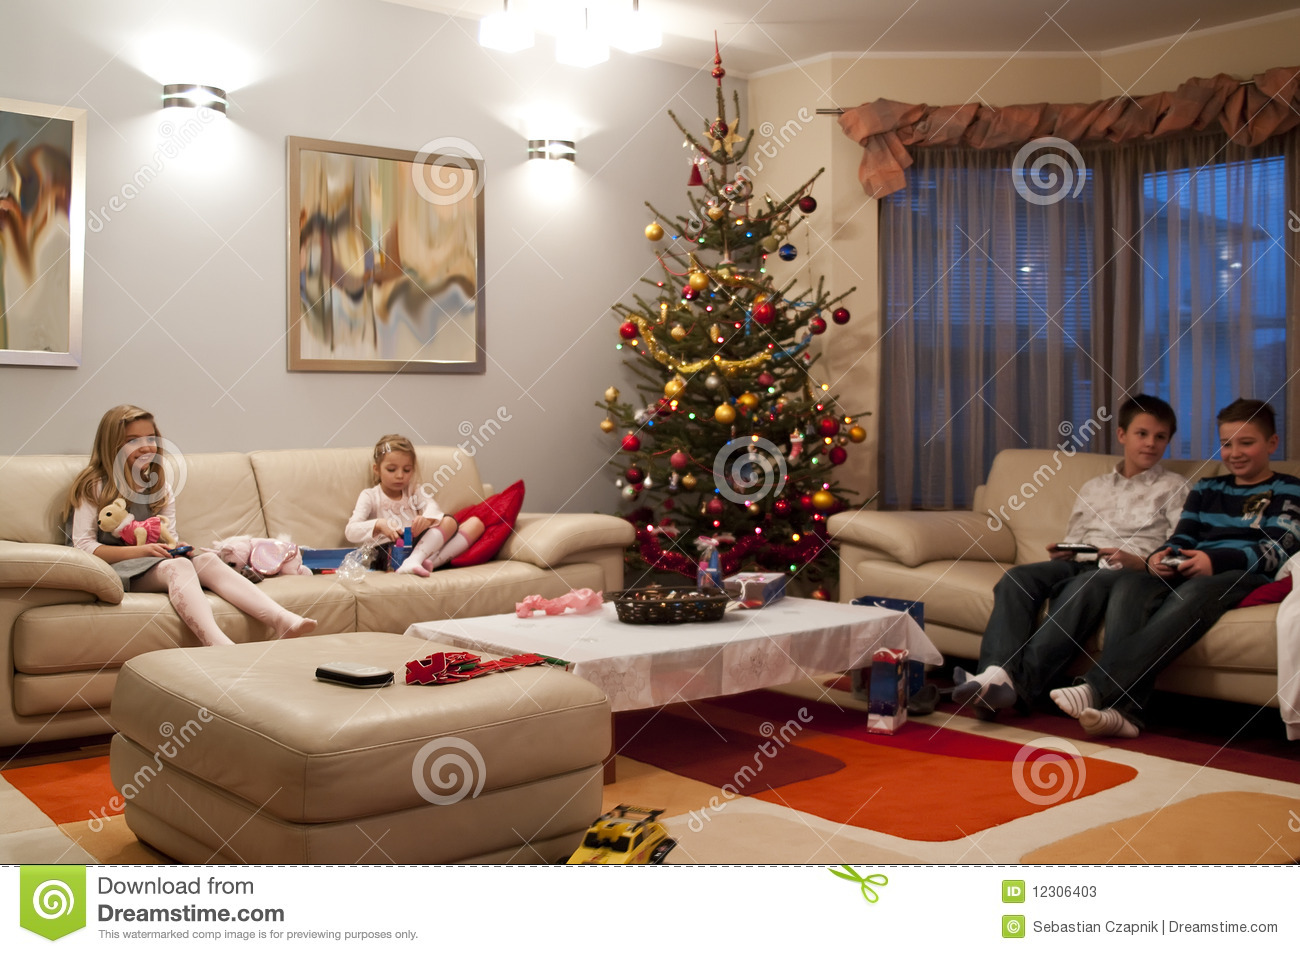 Children In Living Room Stock Image Image Of Colorful